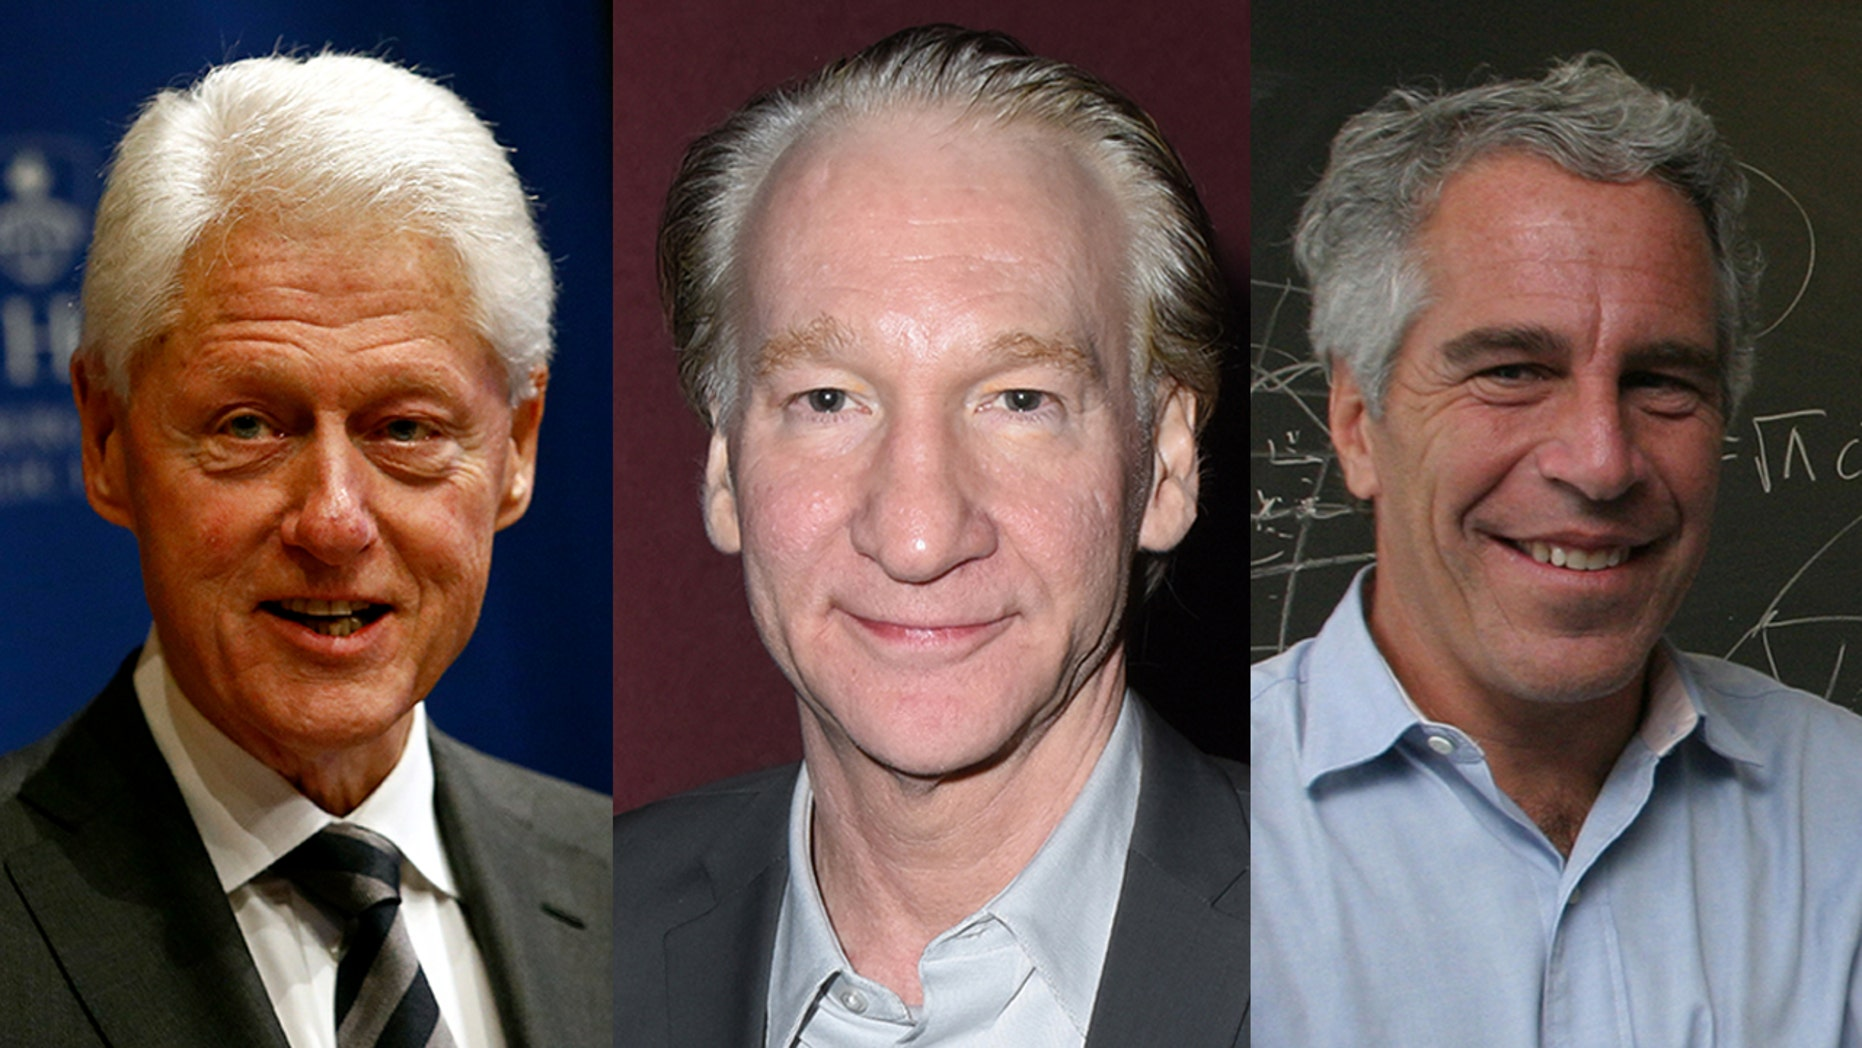 Bill Maher tweeted about former President Bill Clinton being wakeful of Jeffrey Epstein's purported sex crimes behind in 2015.